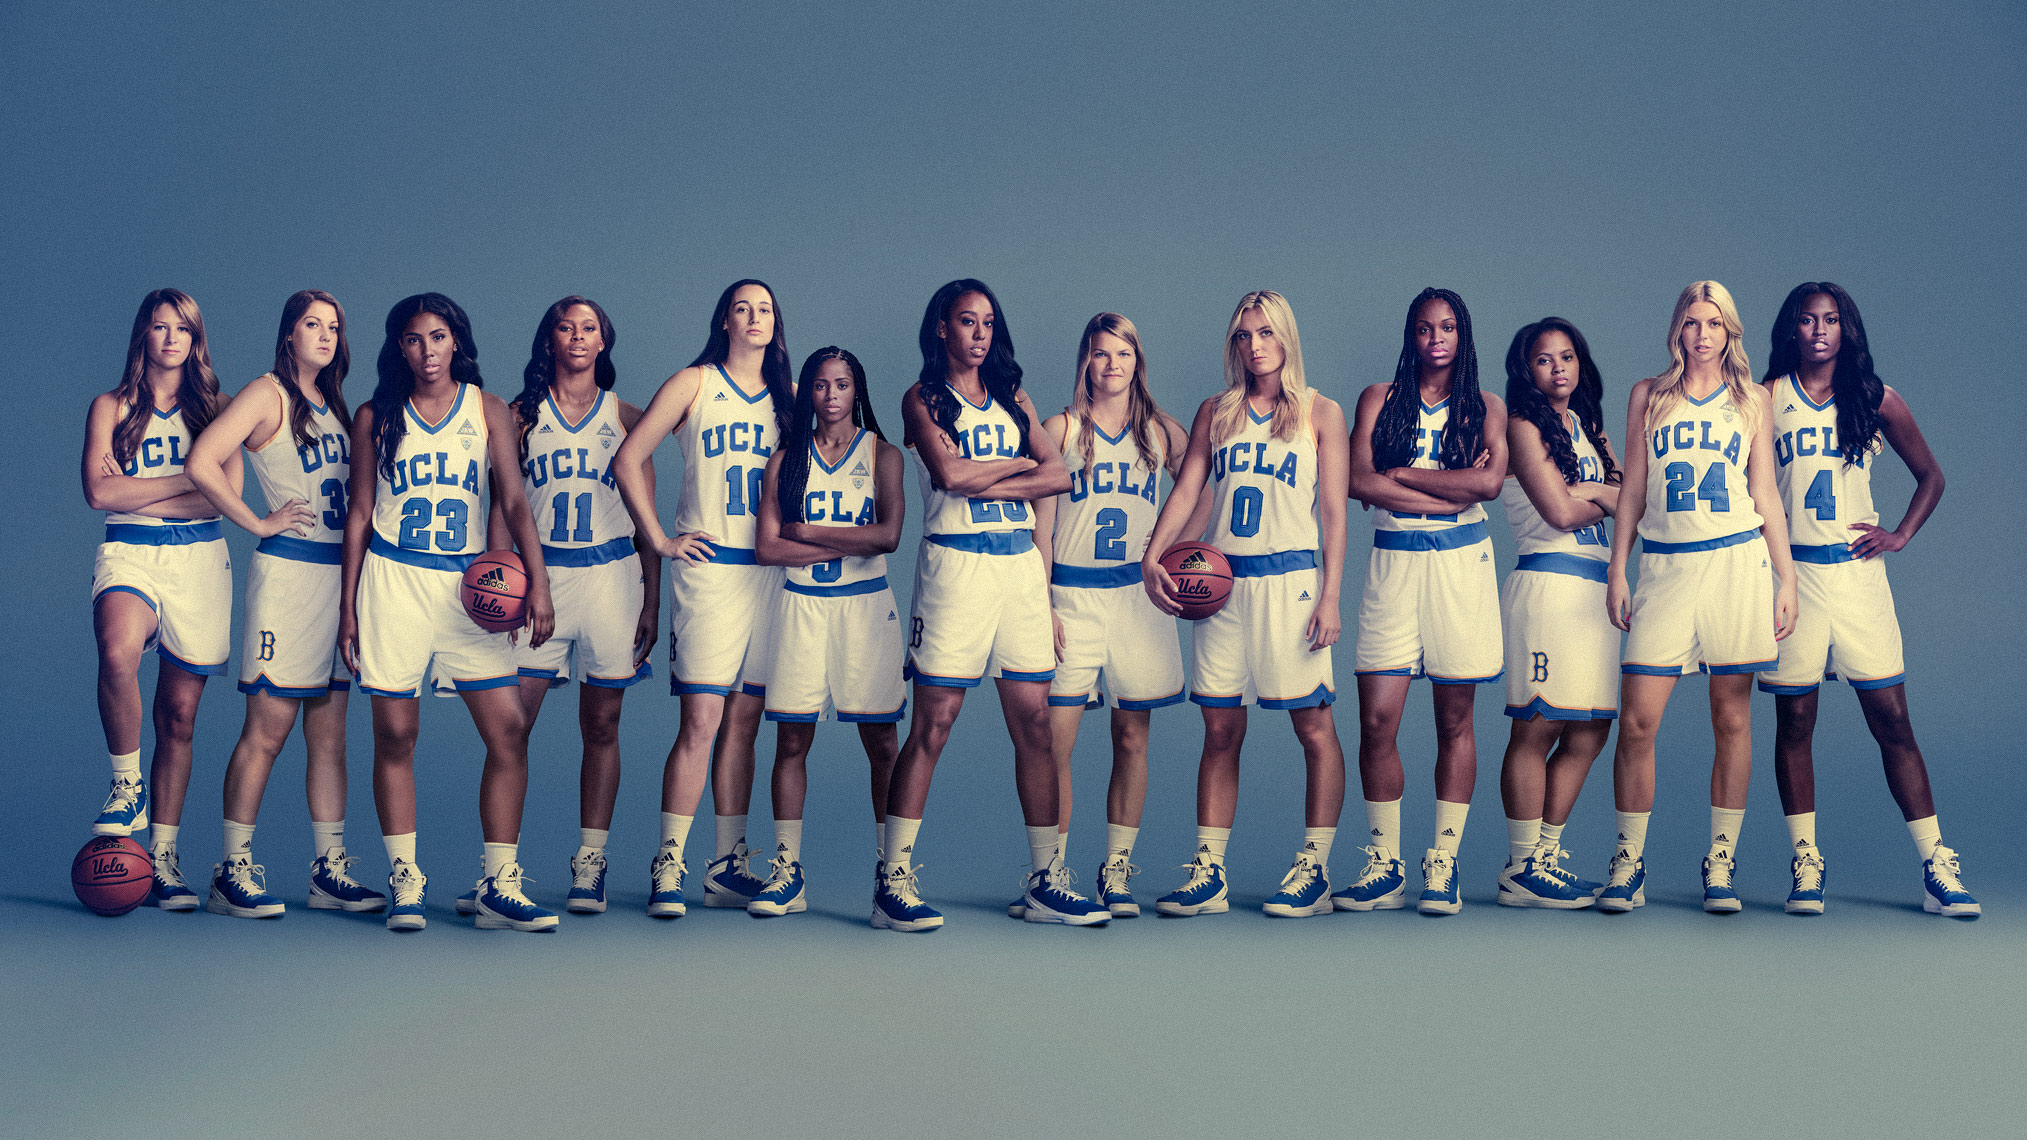 STUDARUS_UCLA_WBB_2016_TEAM